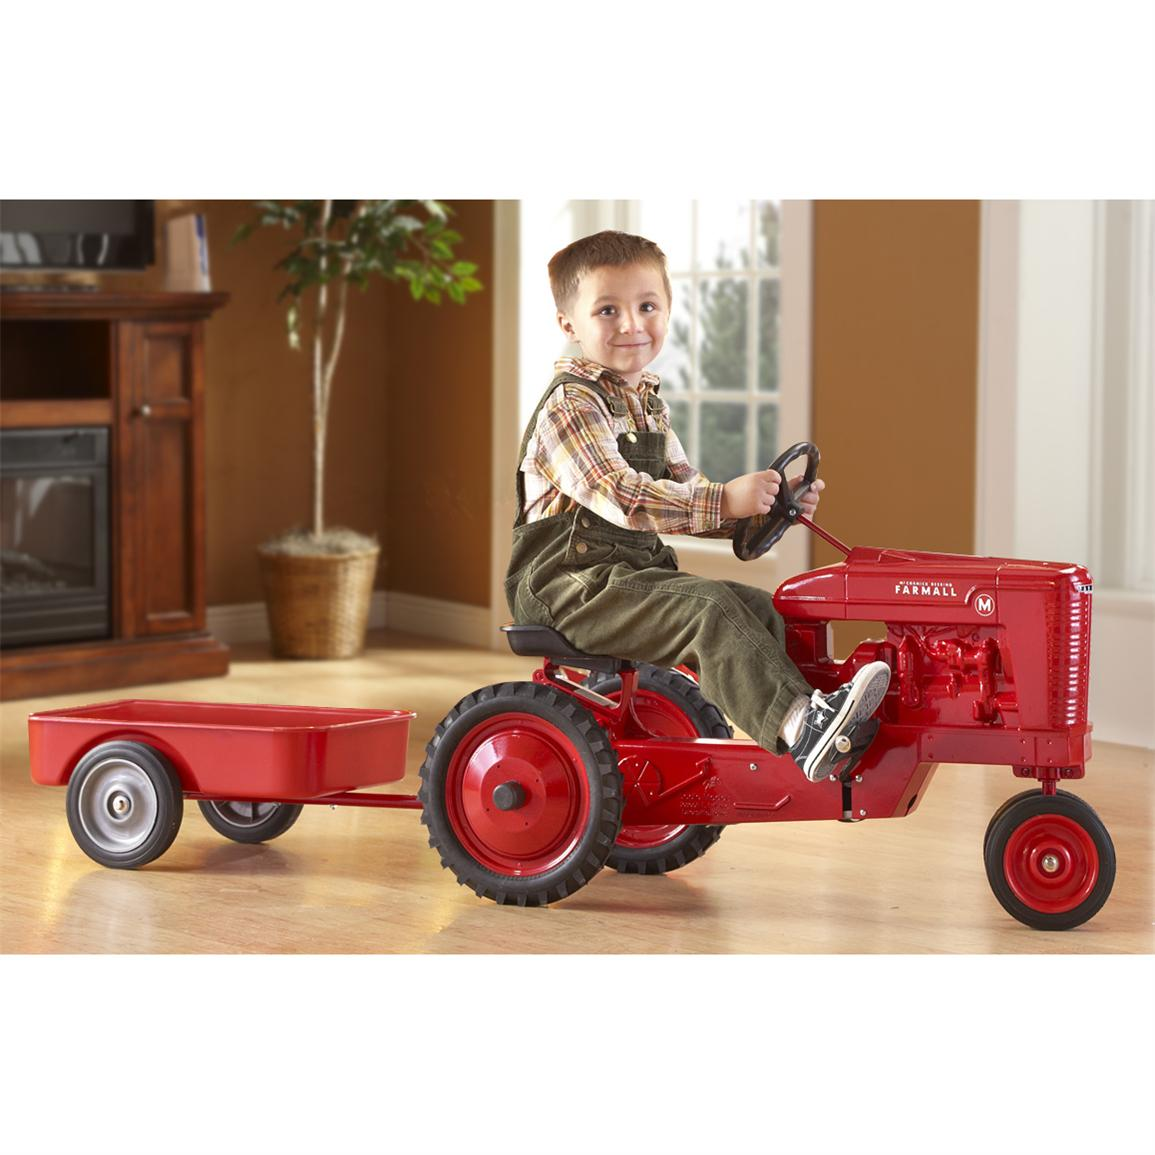 Farmall® M Pedal Tractor, Red